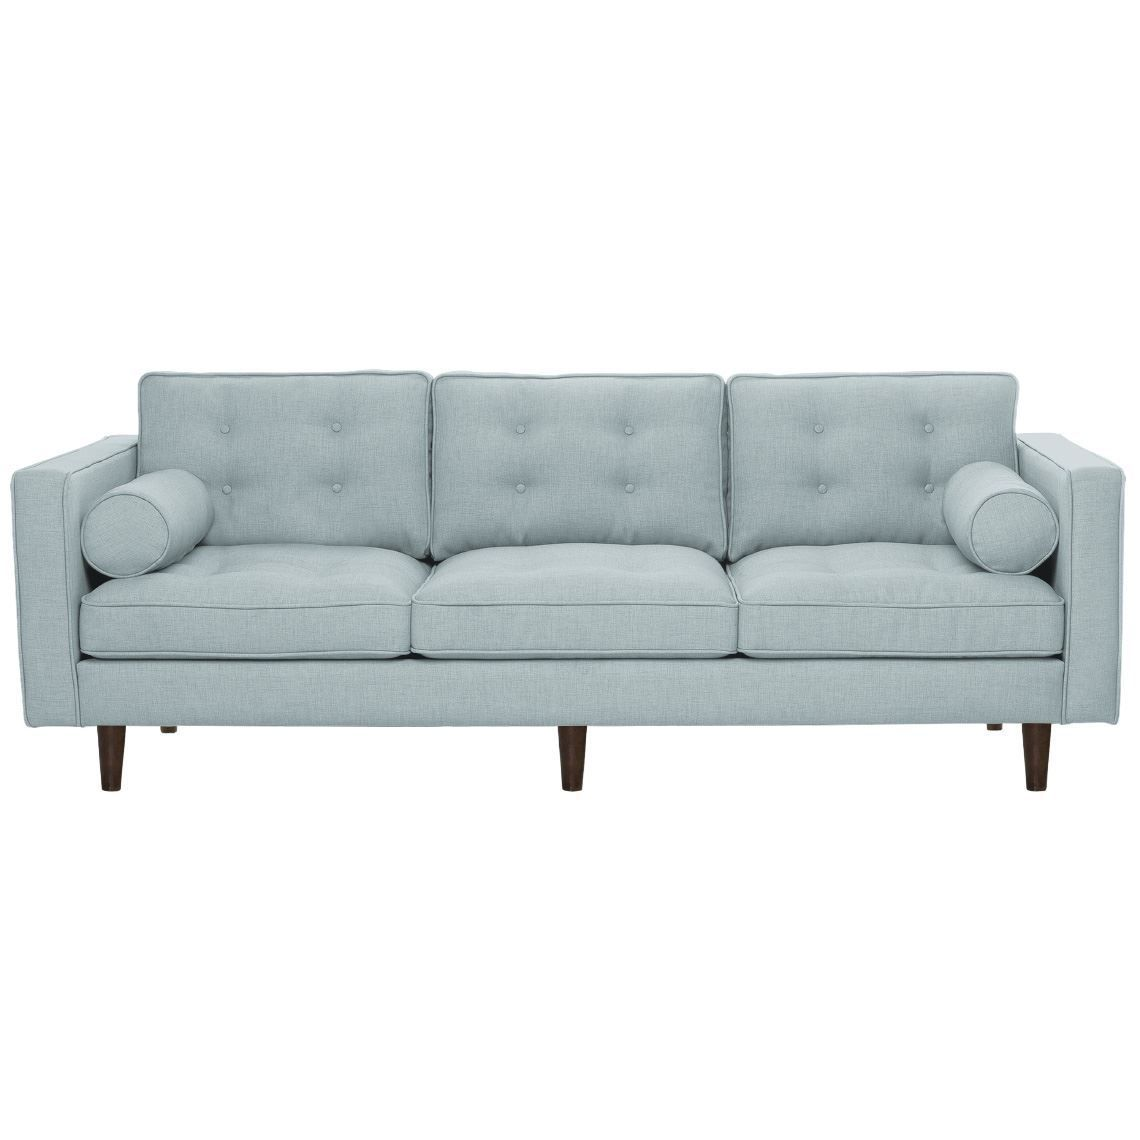 Copenhagen 2 5 Seat Sofa In 2020 Sofa Love Seat Contemporary Furniture